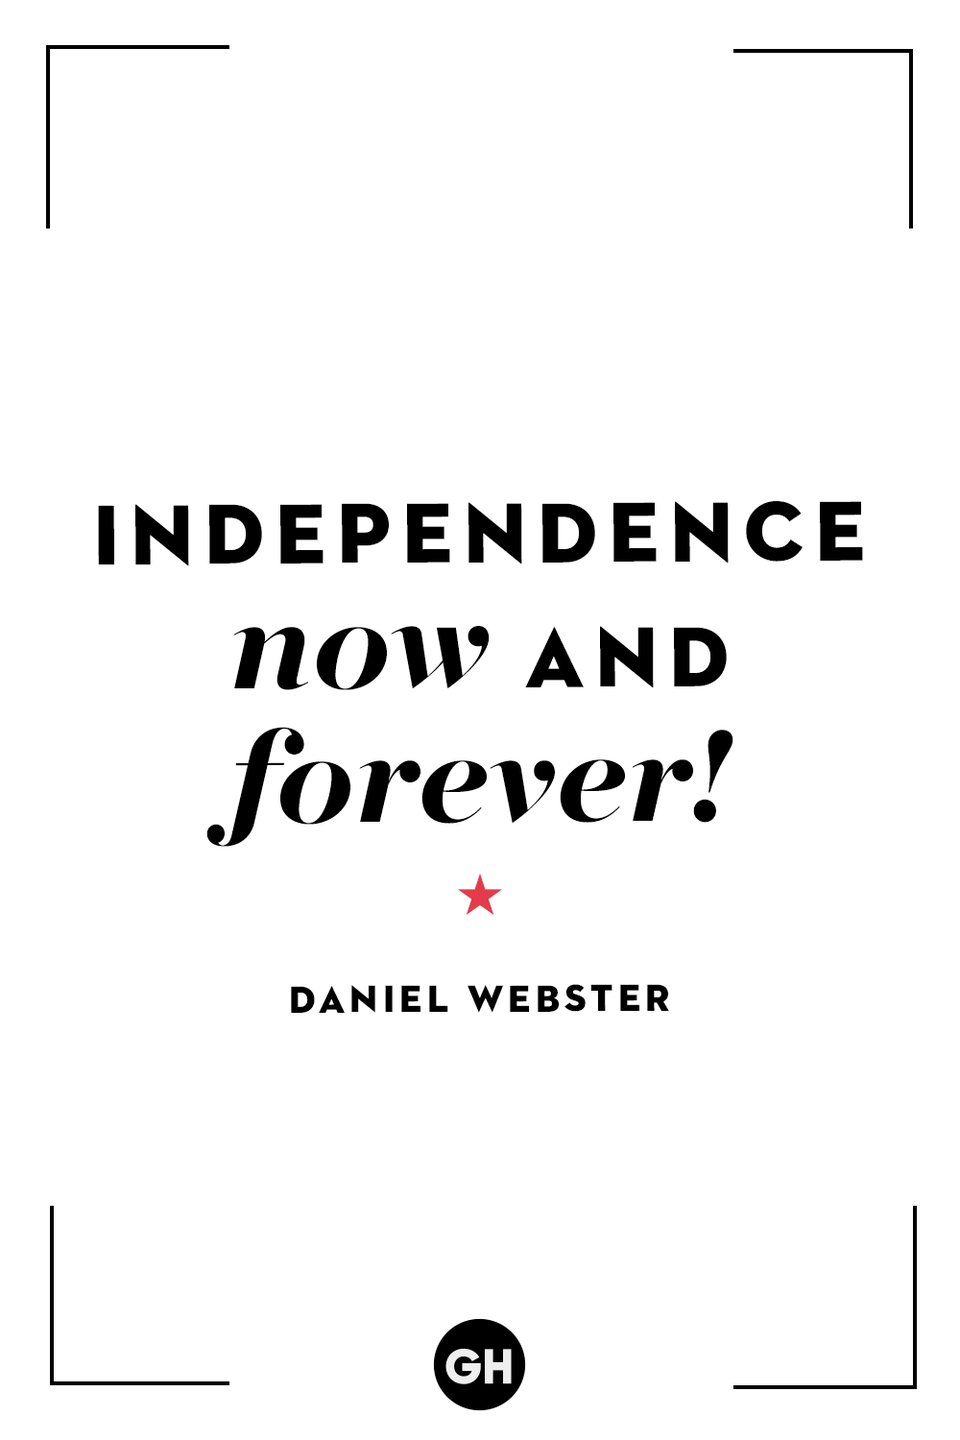 <p>Independence now and forever!</p>